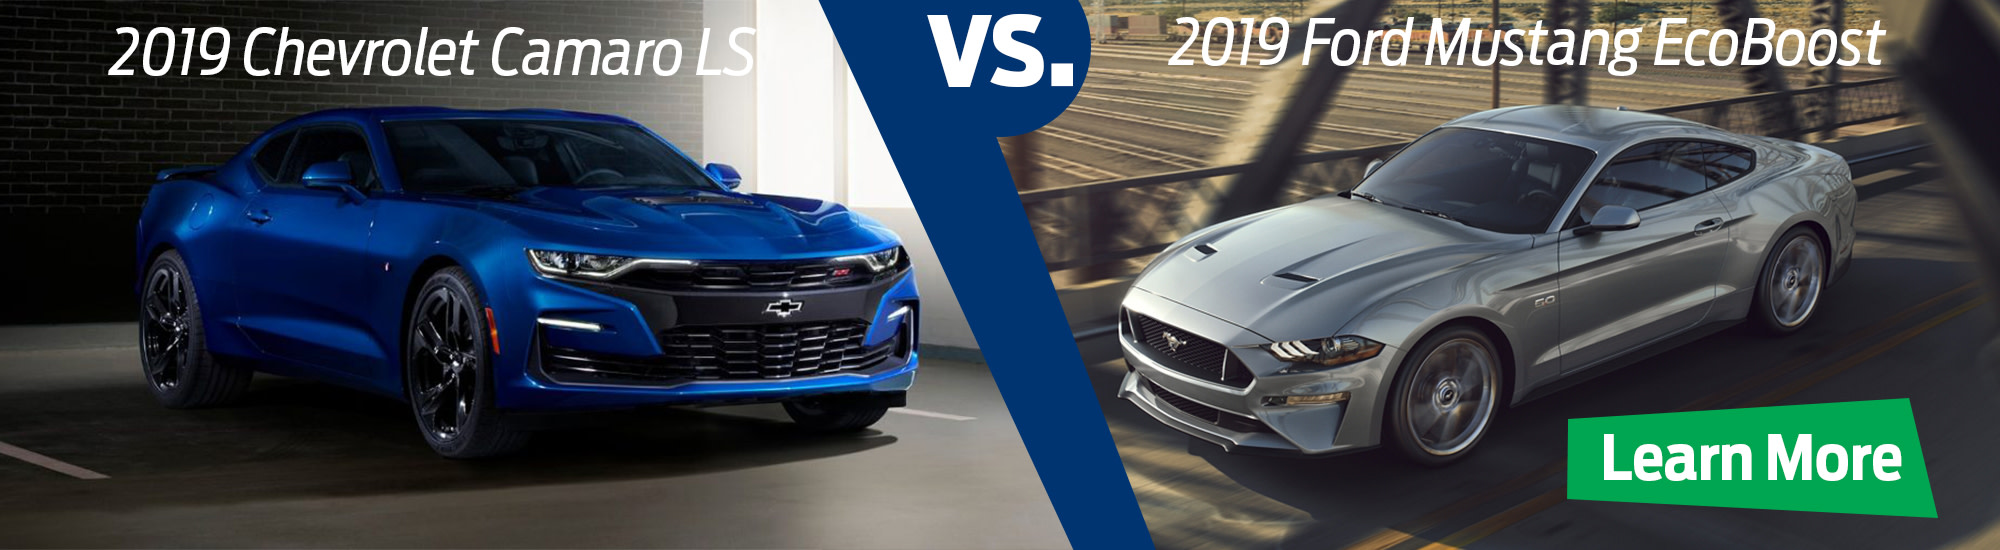 2019 Ford Mustang EcoBoost Convertible v 2019 Chevrolet Camero LS